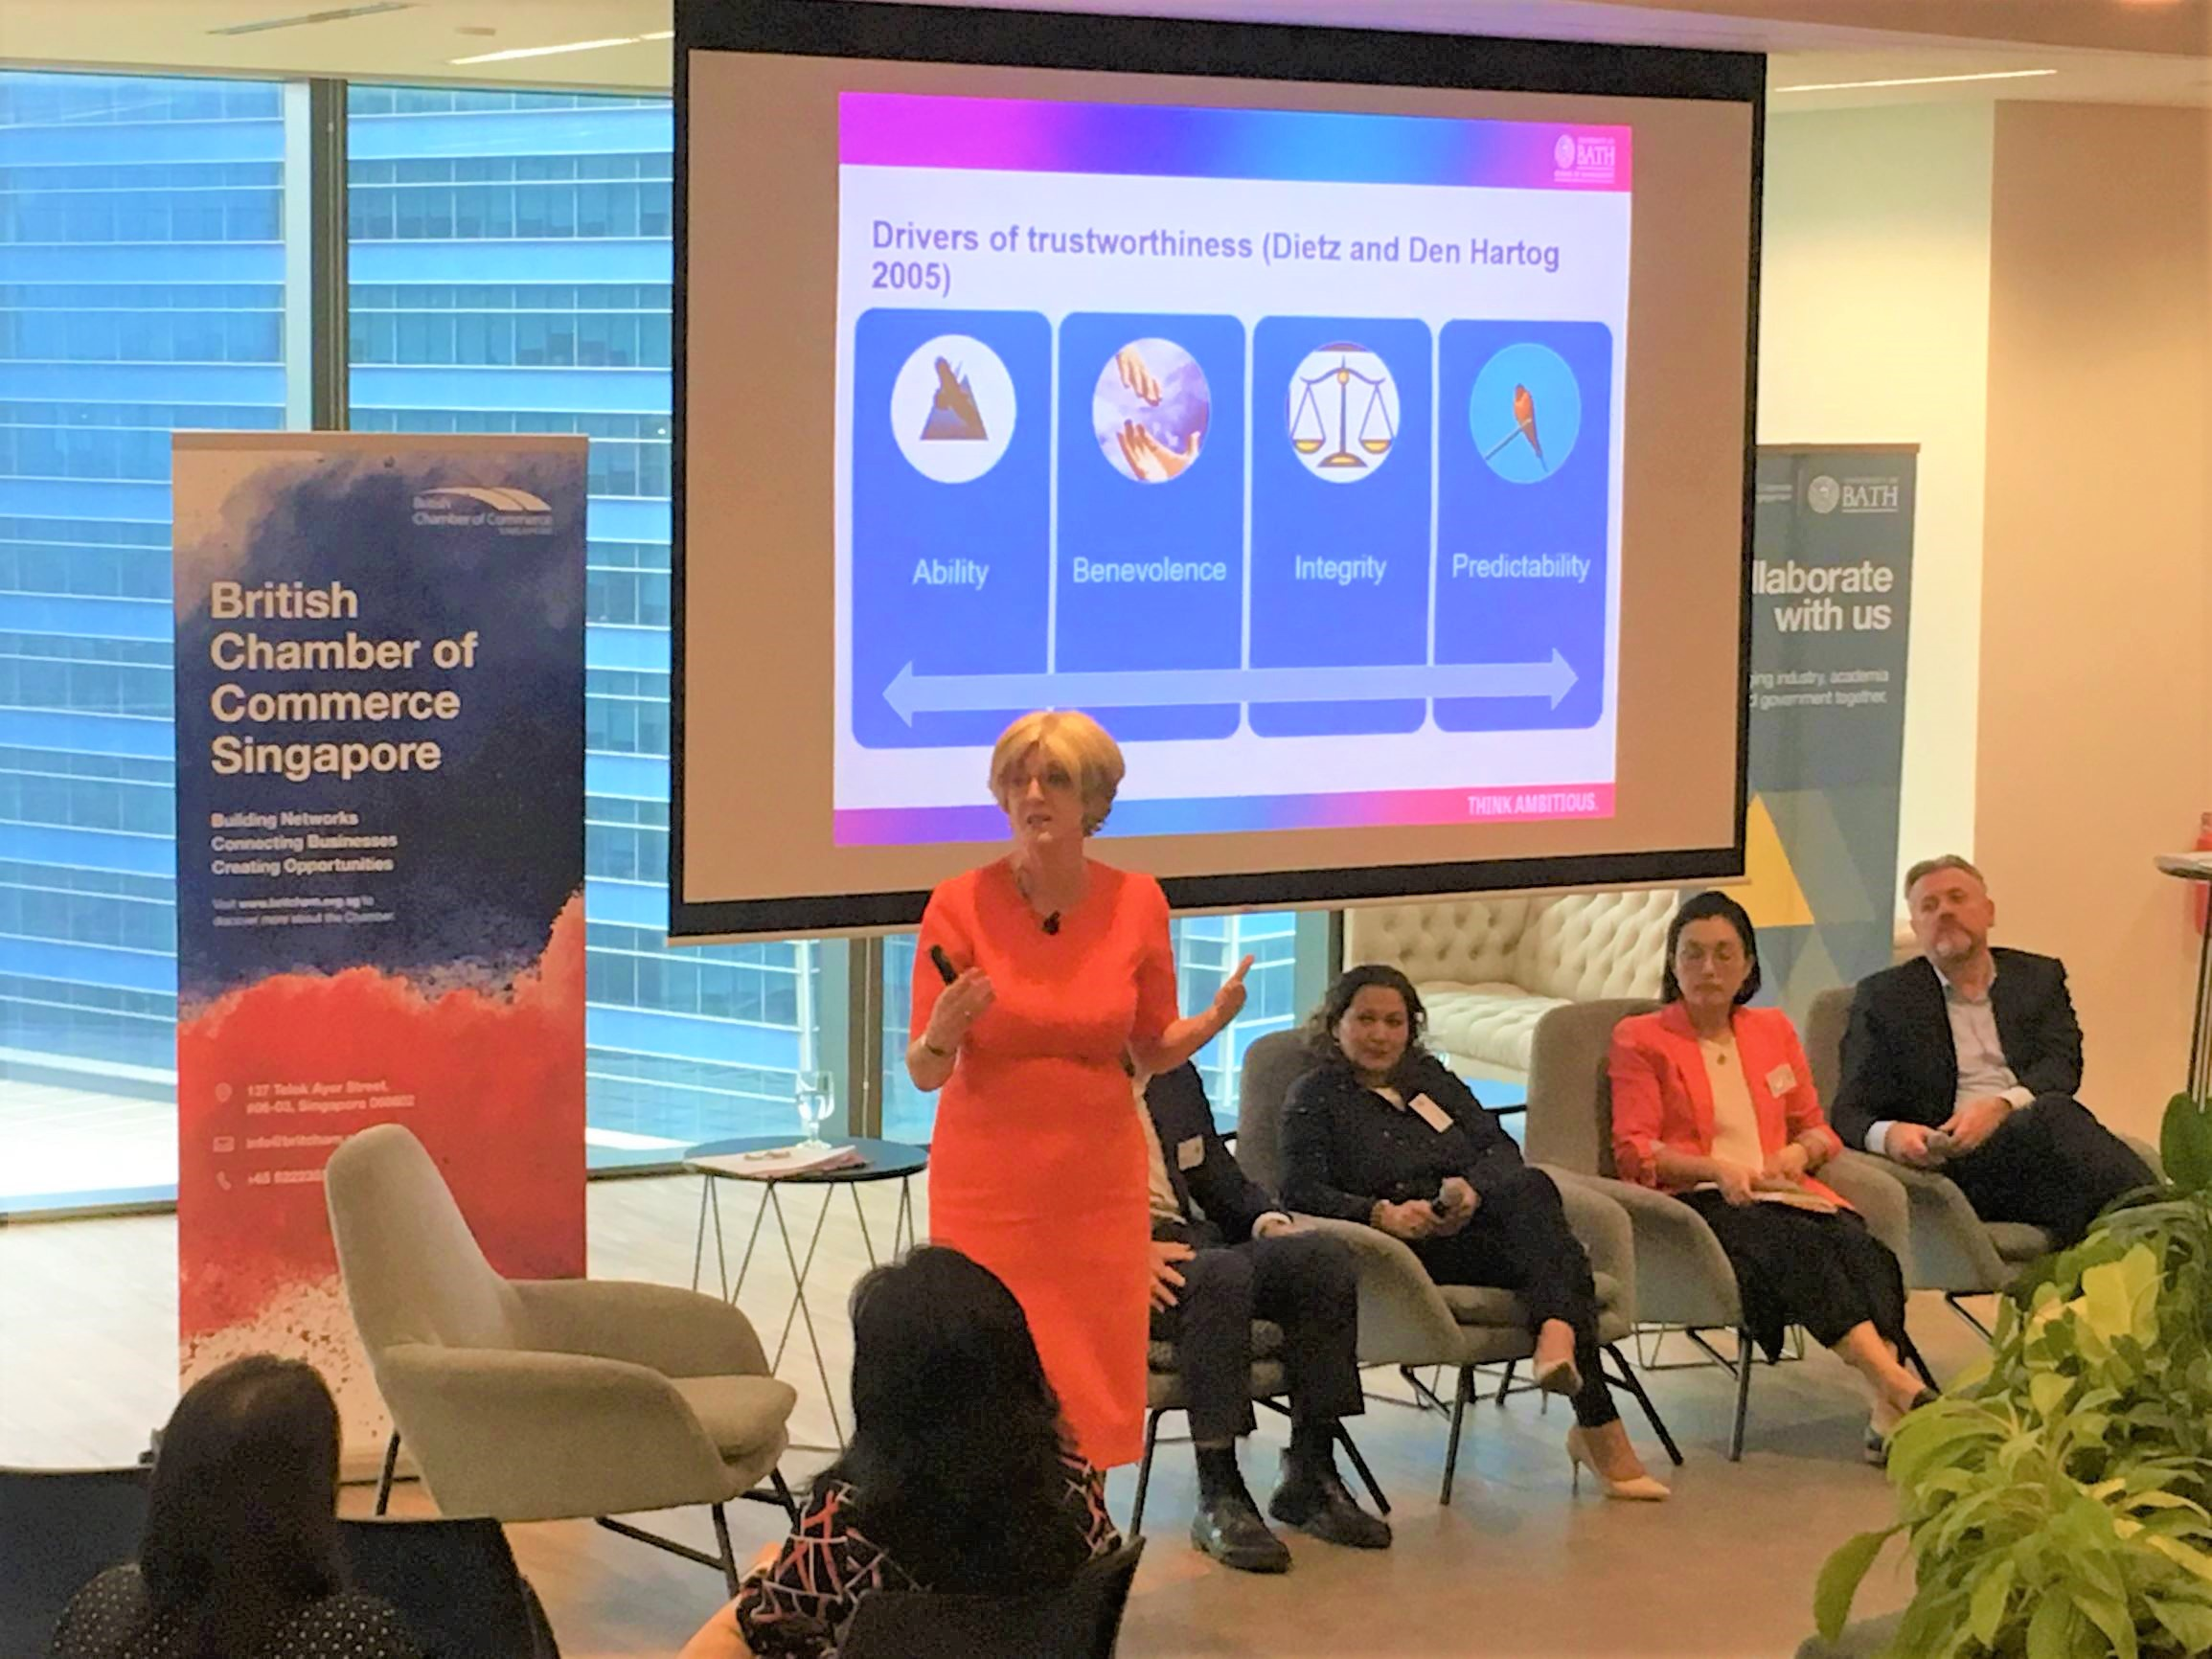 Professor Veronica Hope Hailey, Vice President External Engagement, presenting at a Future Leadership event at Prudential Singapore HQ.